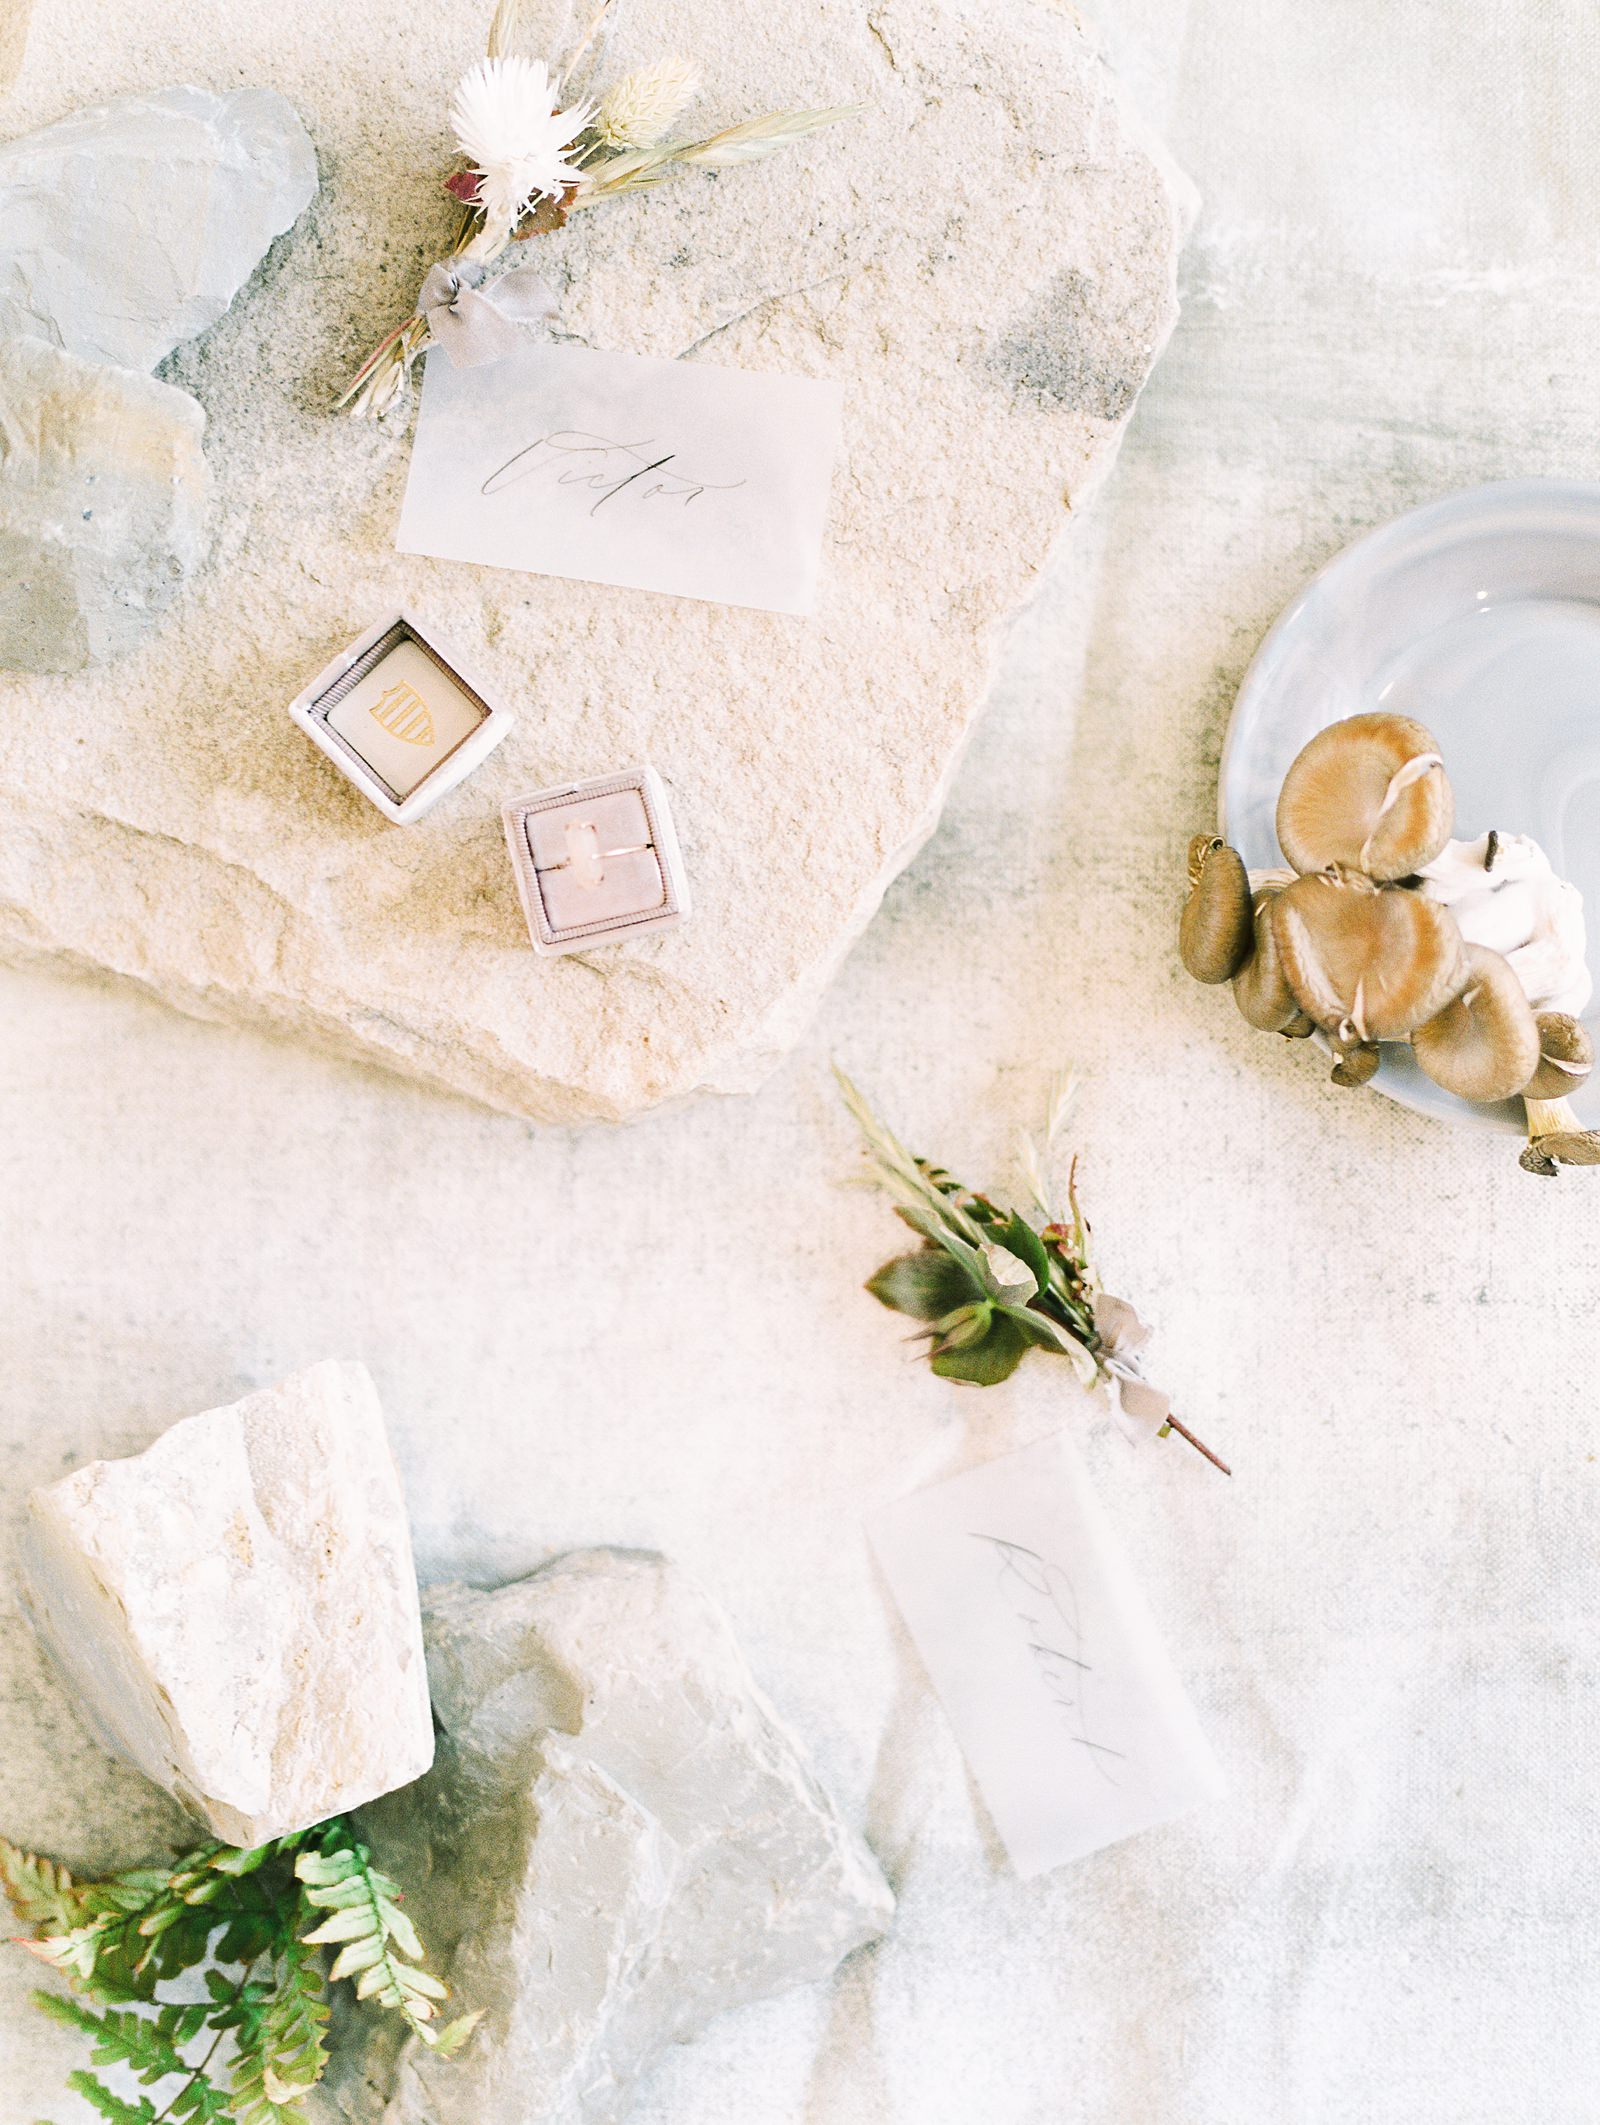 Heber Valley Natural Organic Wedding Inspiration at River Bottoms Ranch, Utah wedding film photography, calligraphy place cards on vellum with raw tablescape centerpieces